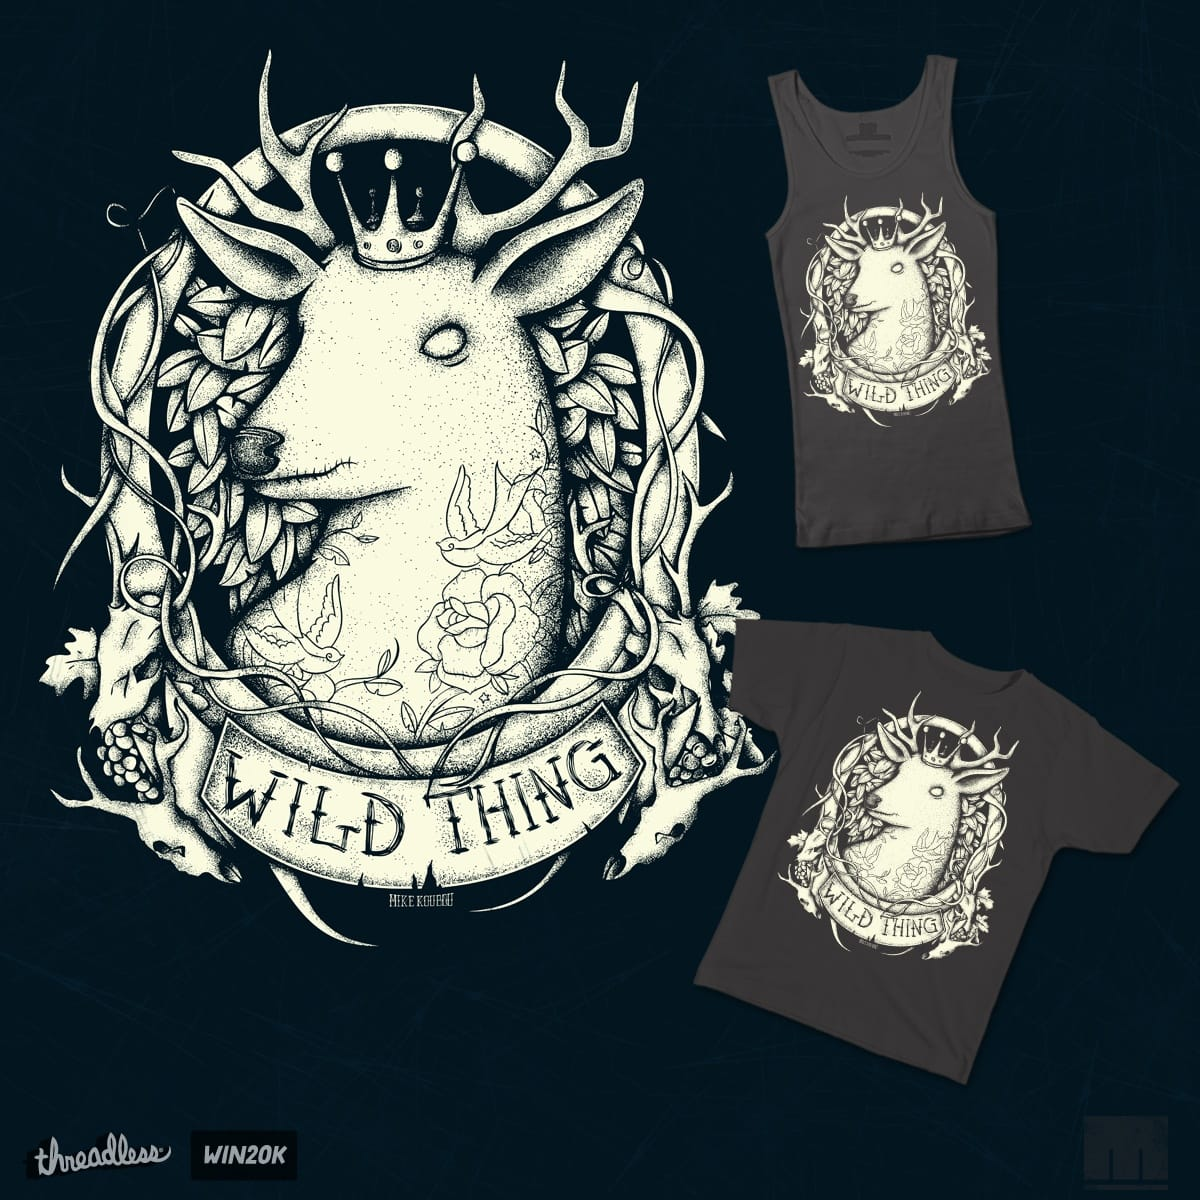 Wild Thing by mikekoubou on Threadless